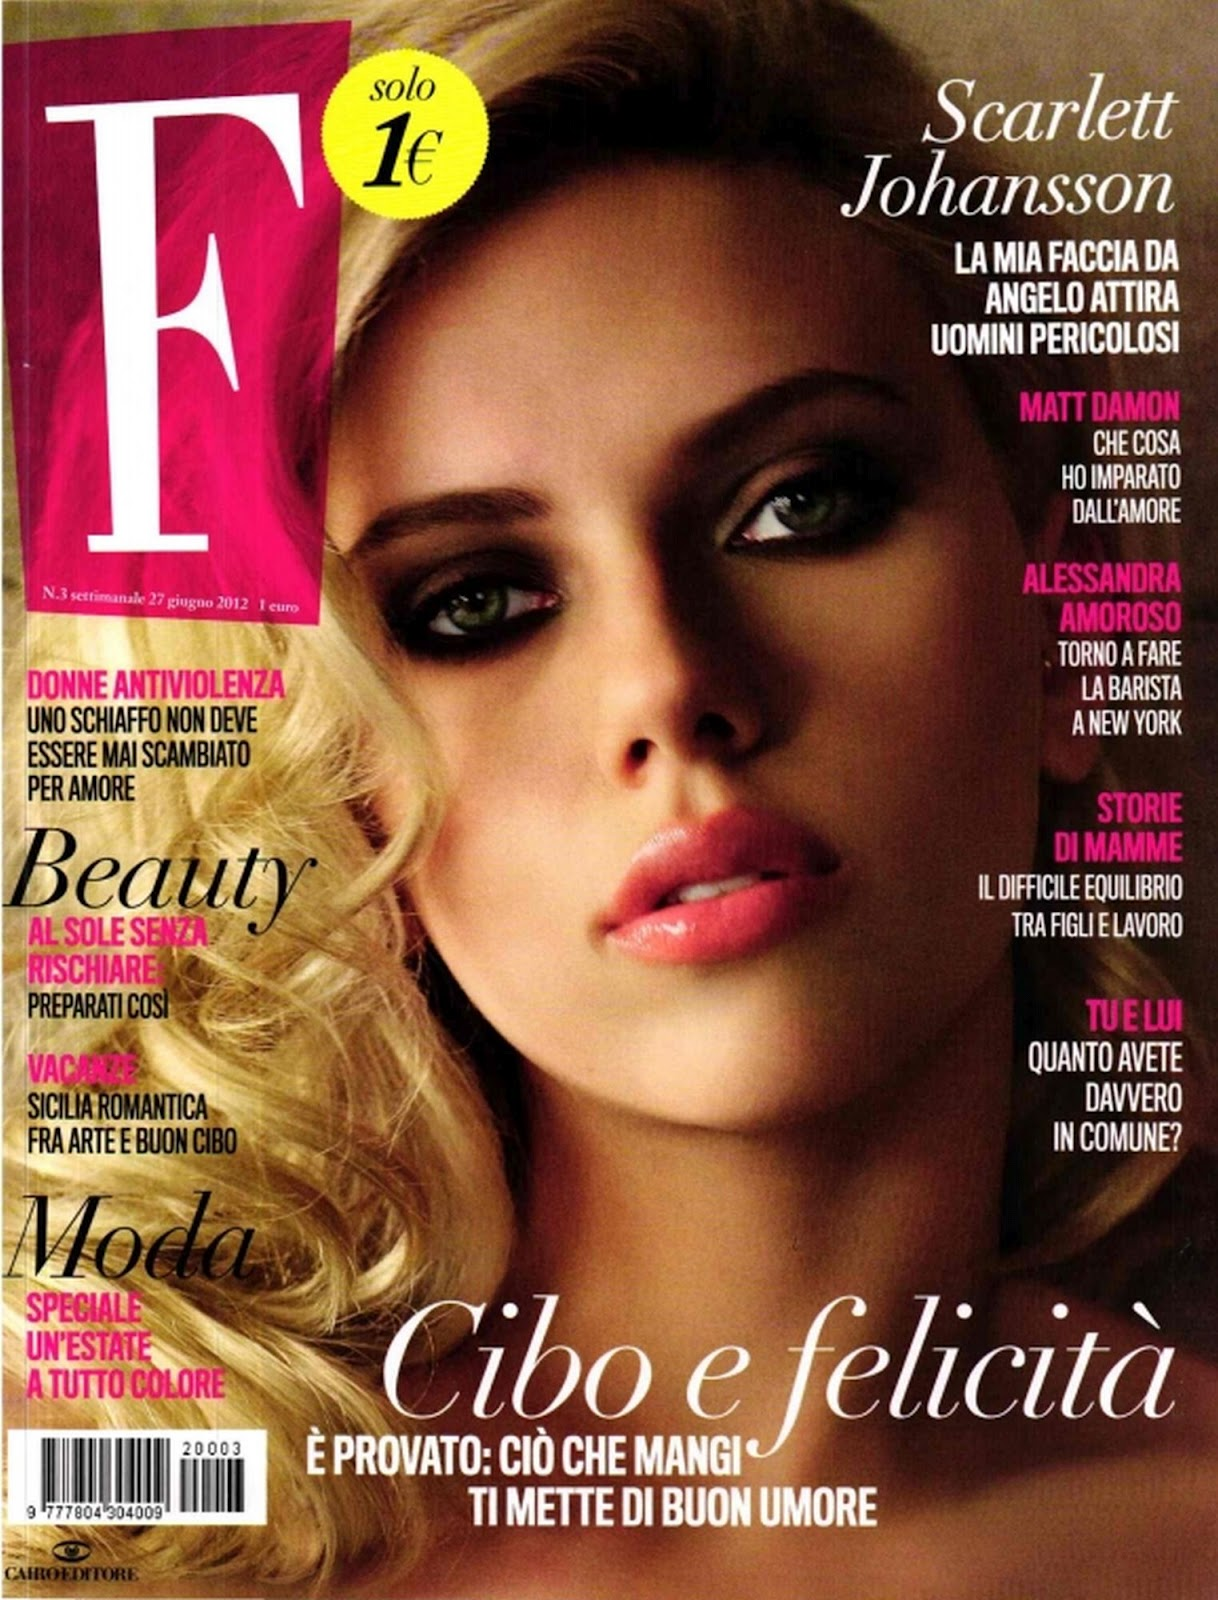 Scarlett Johansson F Magazine Italy June 2012 Issue Just FAB